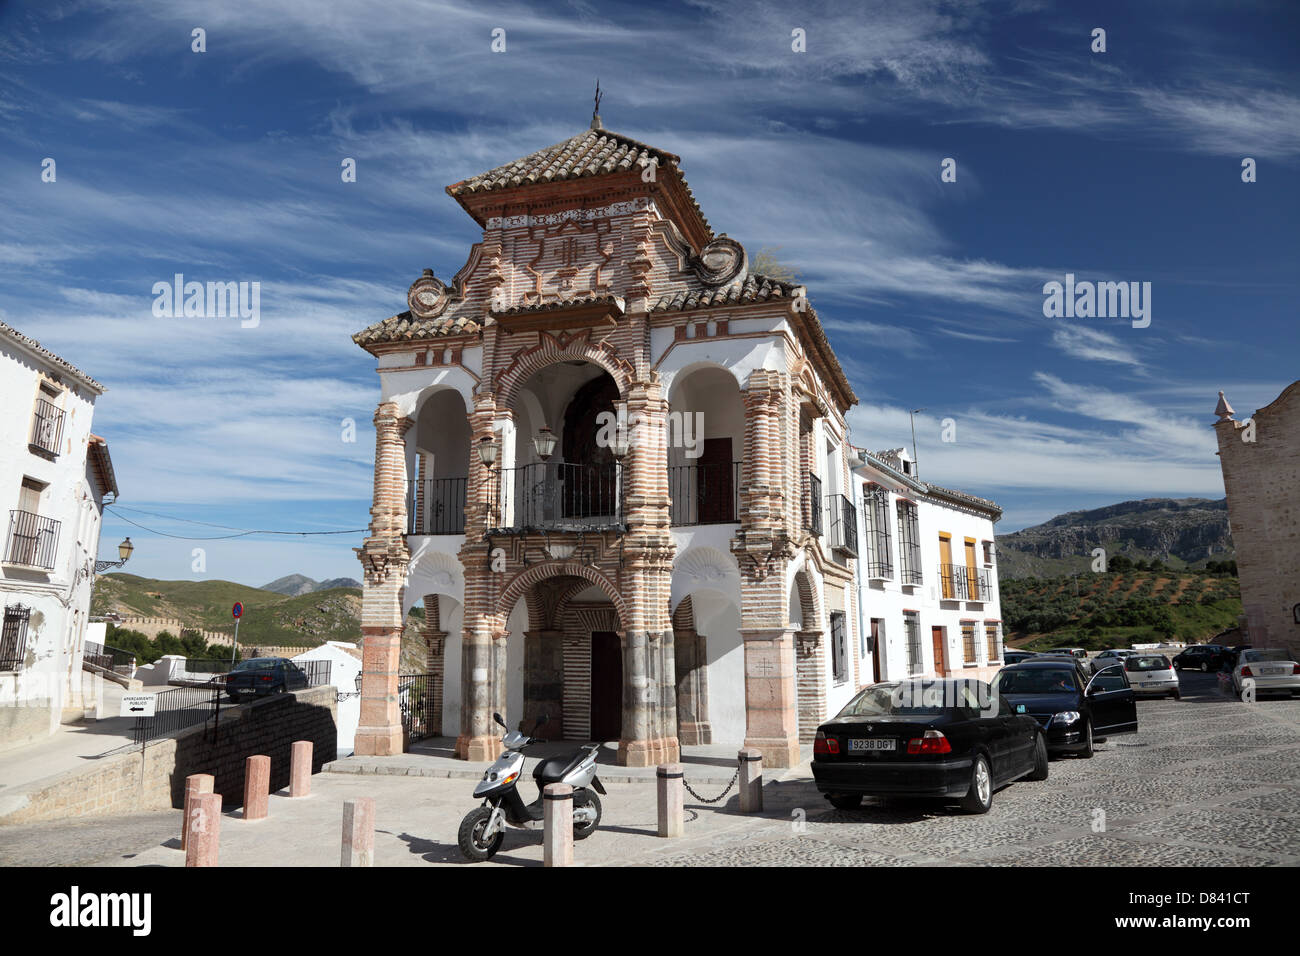 Chapel in Antequera, Andalusia Spain - Stock Image